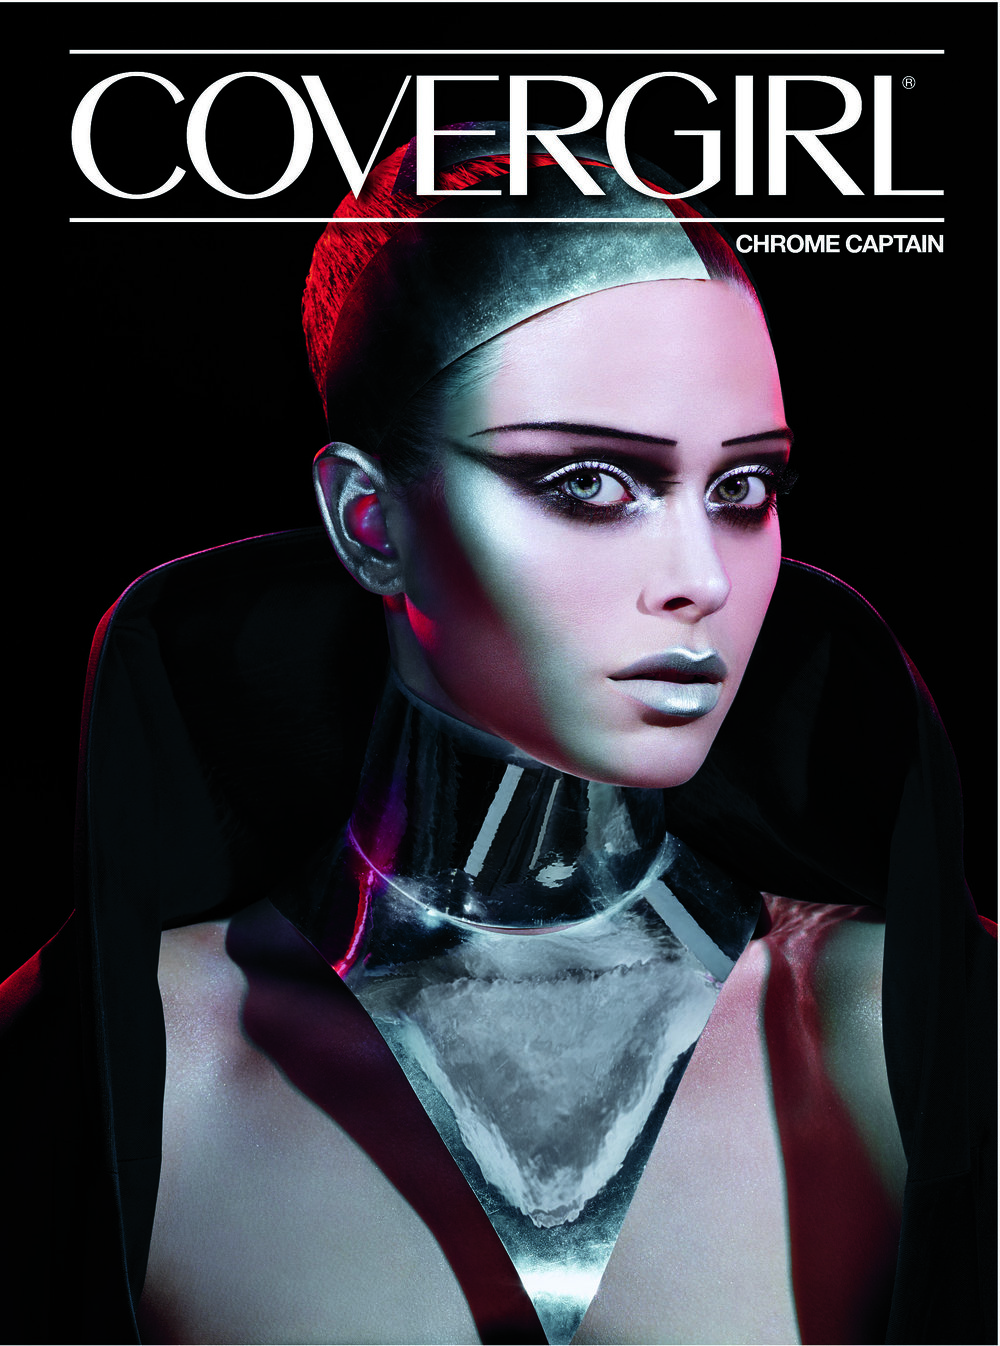 CoverGirl-Chrome-Captain-Look.jpg